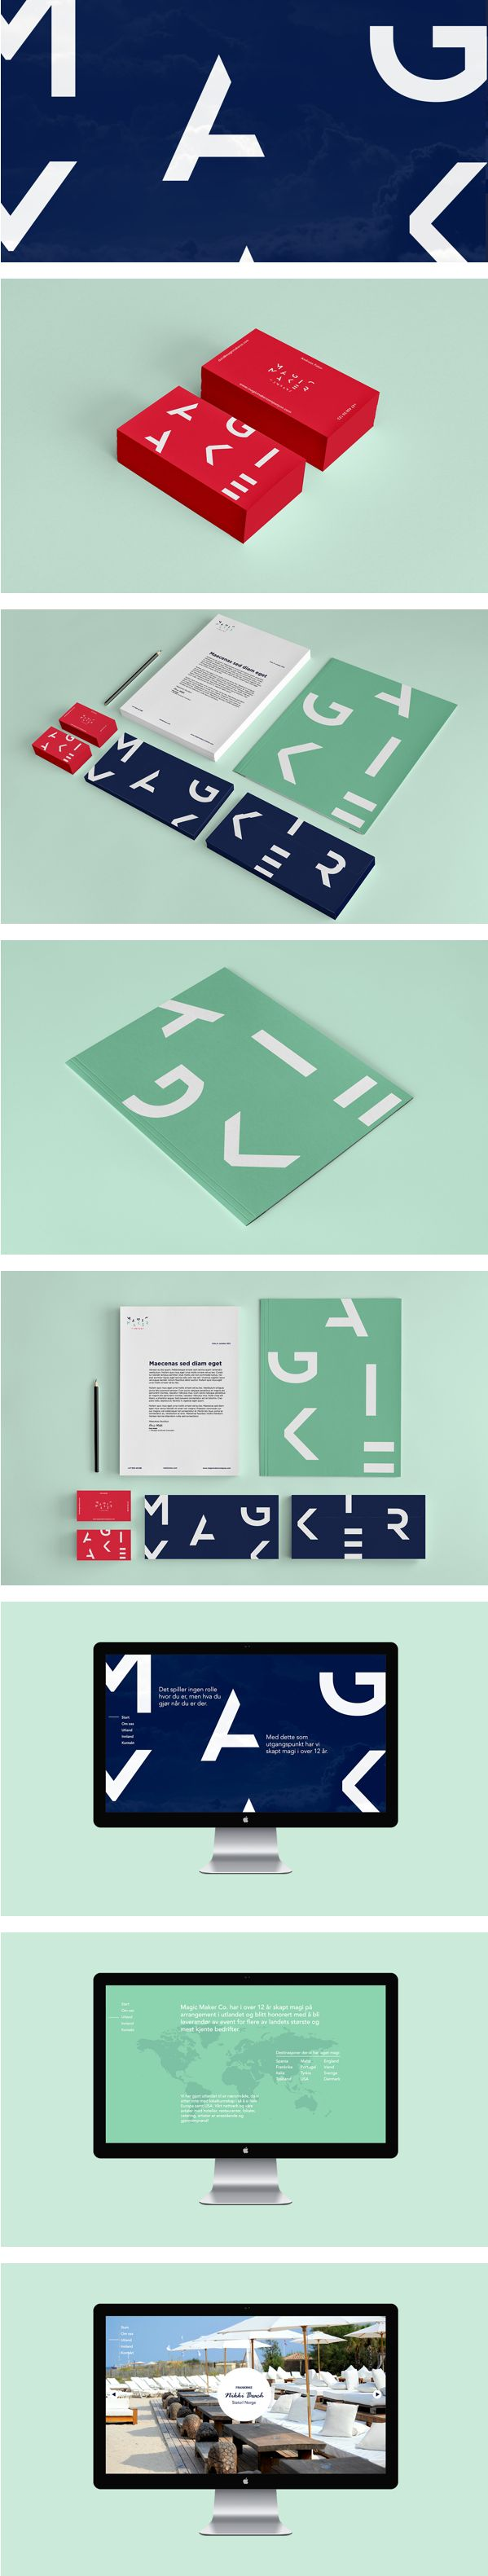 Magic Maker Co. by Knowhow | #stationary #corporate #design #corporatedesign #identity #branding #marketing < repinned by www.BlickeDeeler.de | Take a look at www.LogoGestaltung-Hamburg.de